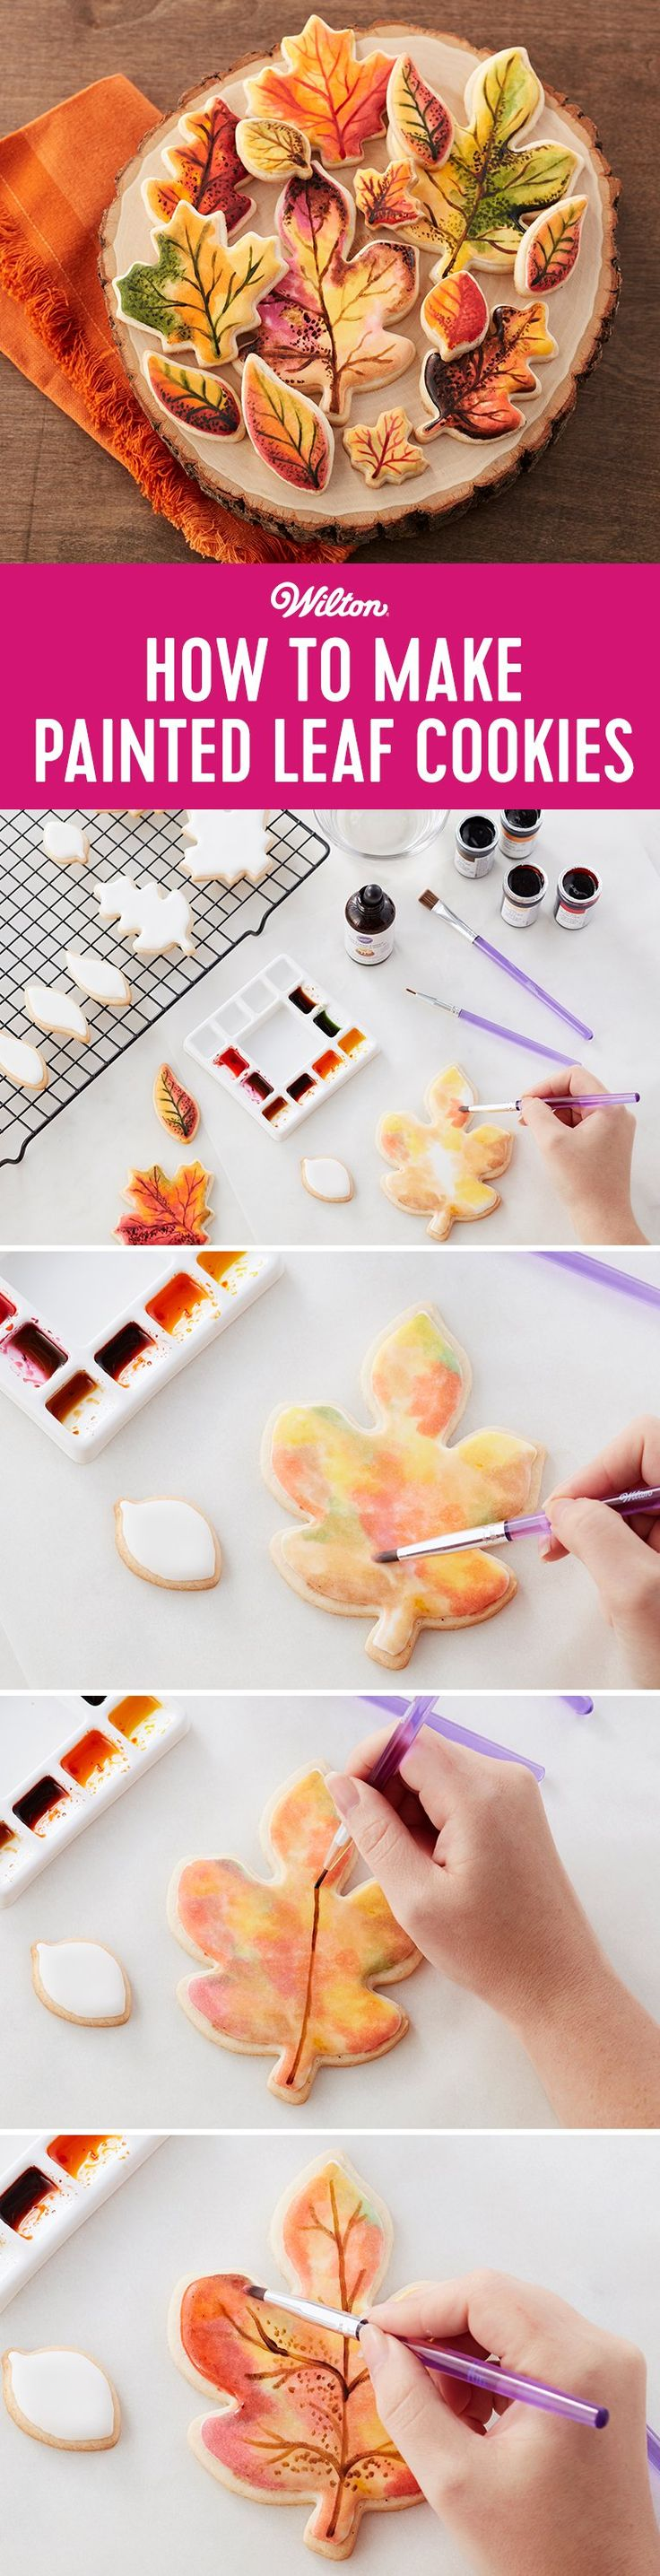 How to Make Fall Painted Leaf Cookies - Make these cookies to match the falling leaves of the season! Use the fun variety of leaf-shaped cookie cutters and your favorite fall colors to paint directly on the iced cookies. Serve them on rustic plates to show off their seasonal flair.